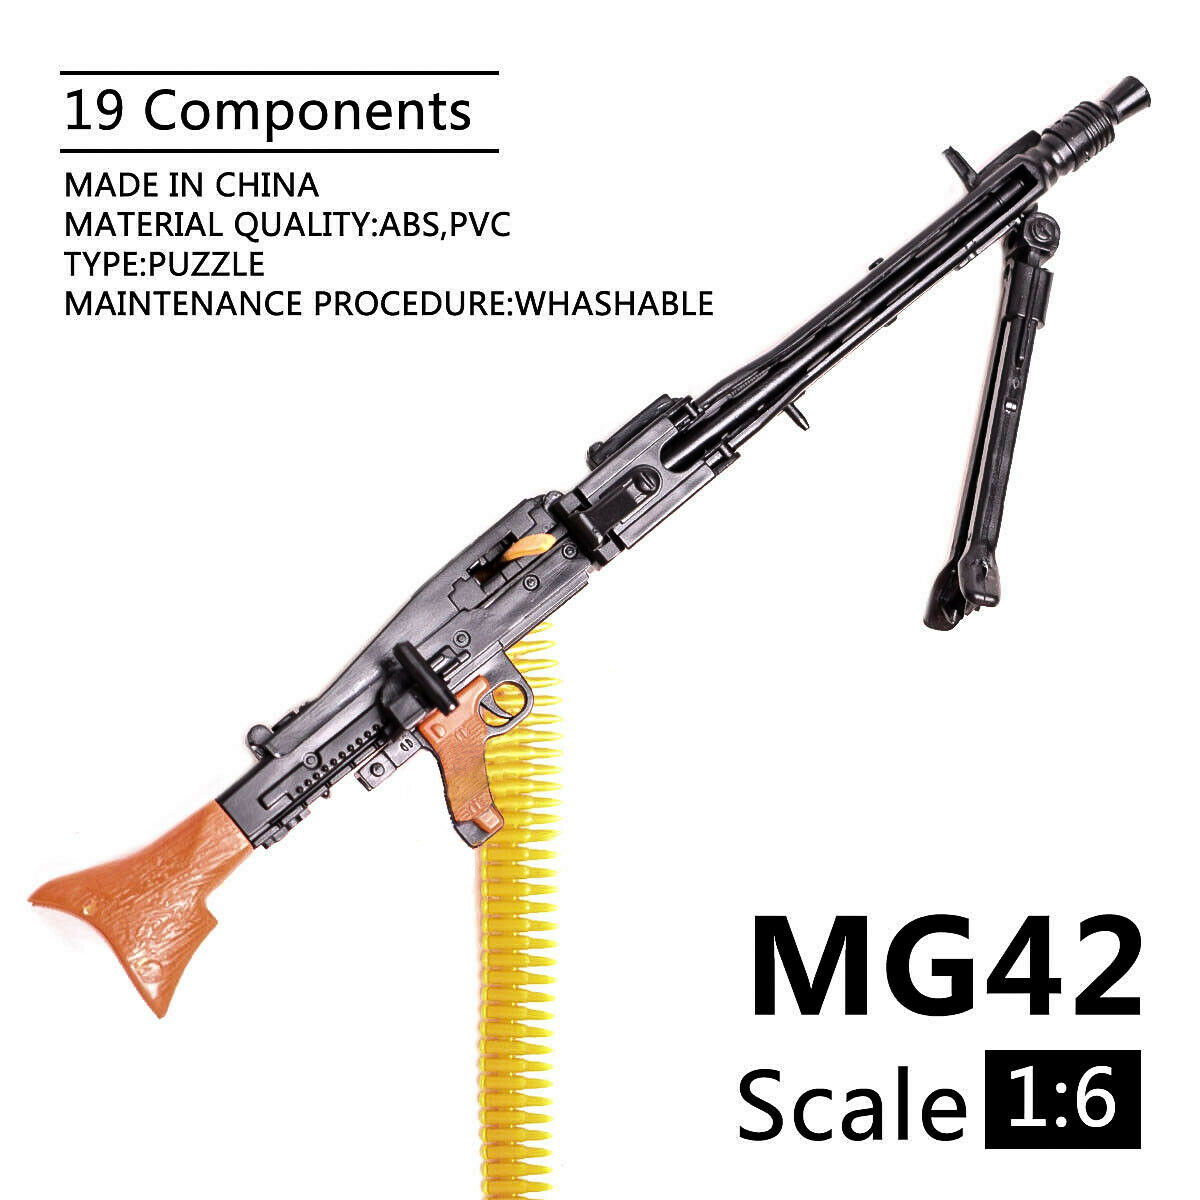 1/6 Scale MG42 Toy Gun Model Assembly Puzzles Building Bricks Gun Soldier Machine Gun Fit 12